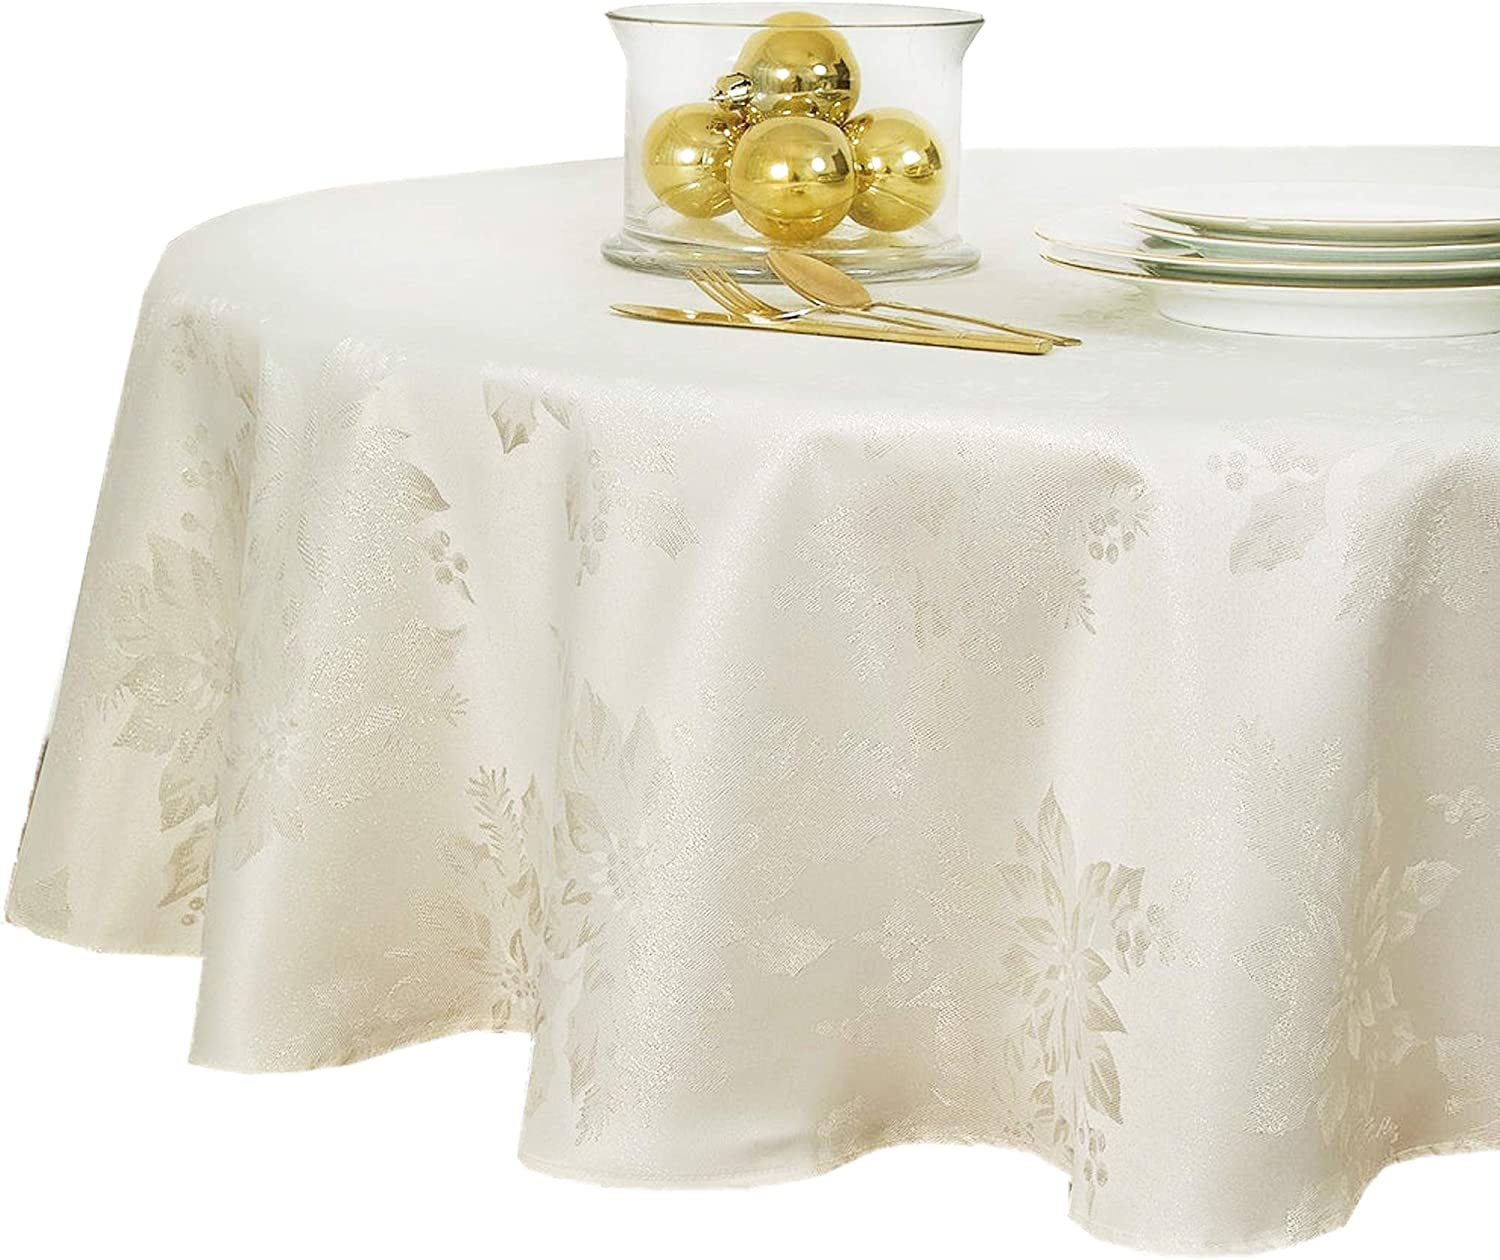 Metallic Holiday Poinsettia Damask Christmas Holiday Tablecloth - 70 Inch Round, Ivory/Gold